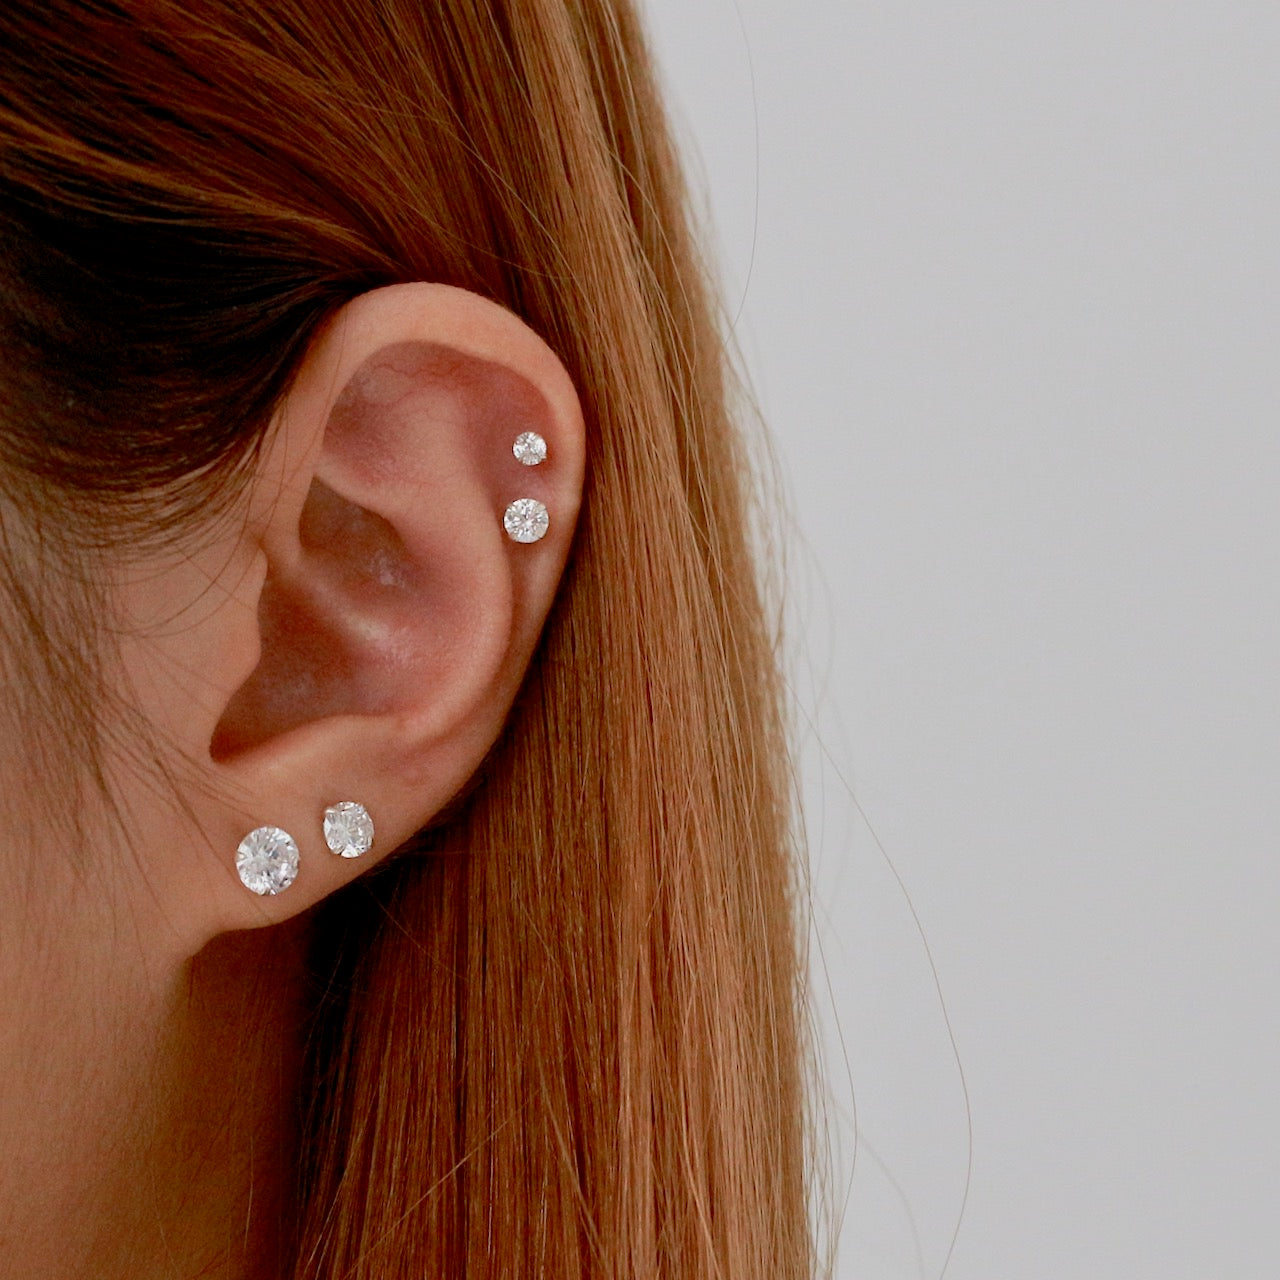 Sparkly Small Stud Earrings